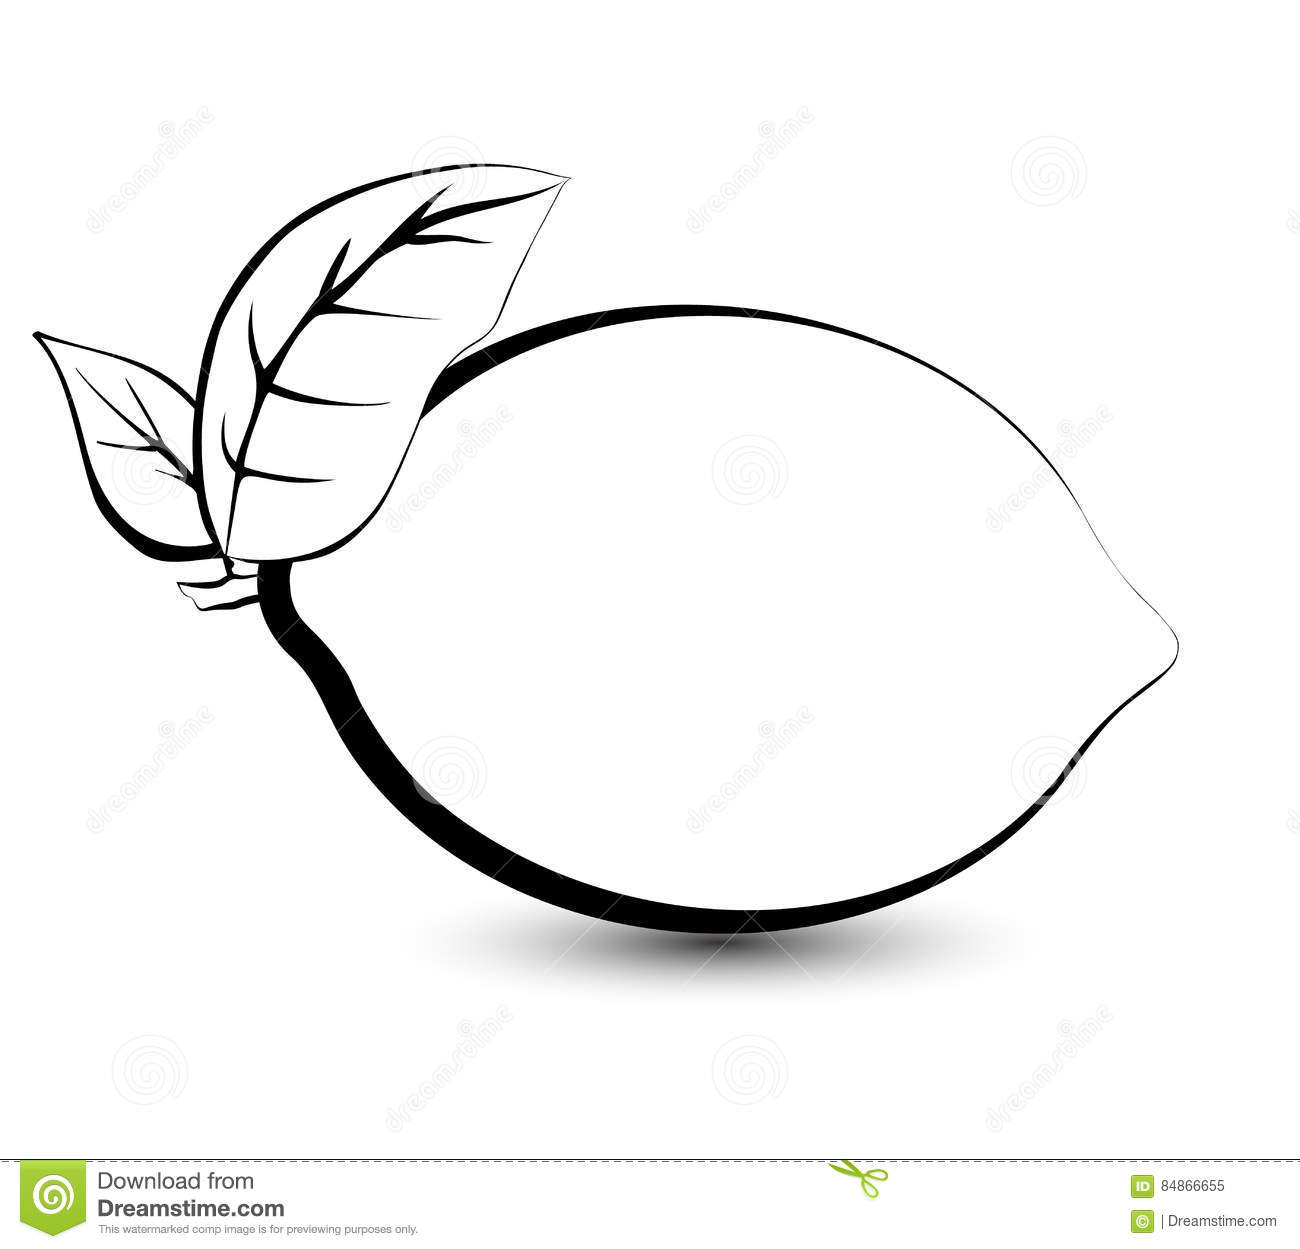 Lemon Drawing Black And White | www.pixshark.com - Images ...